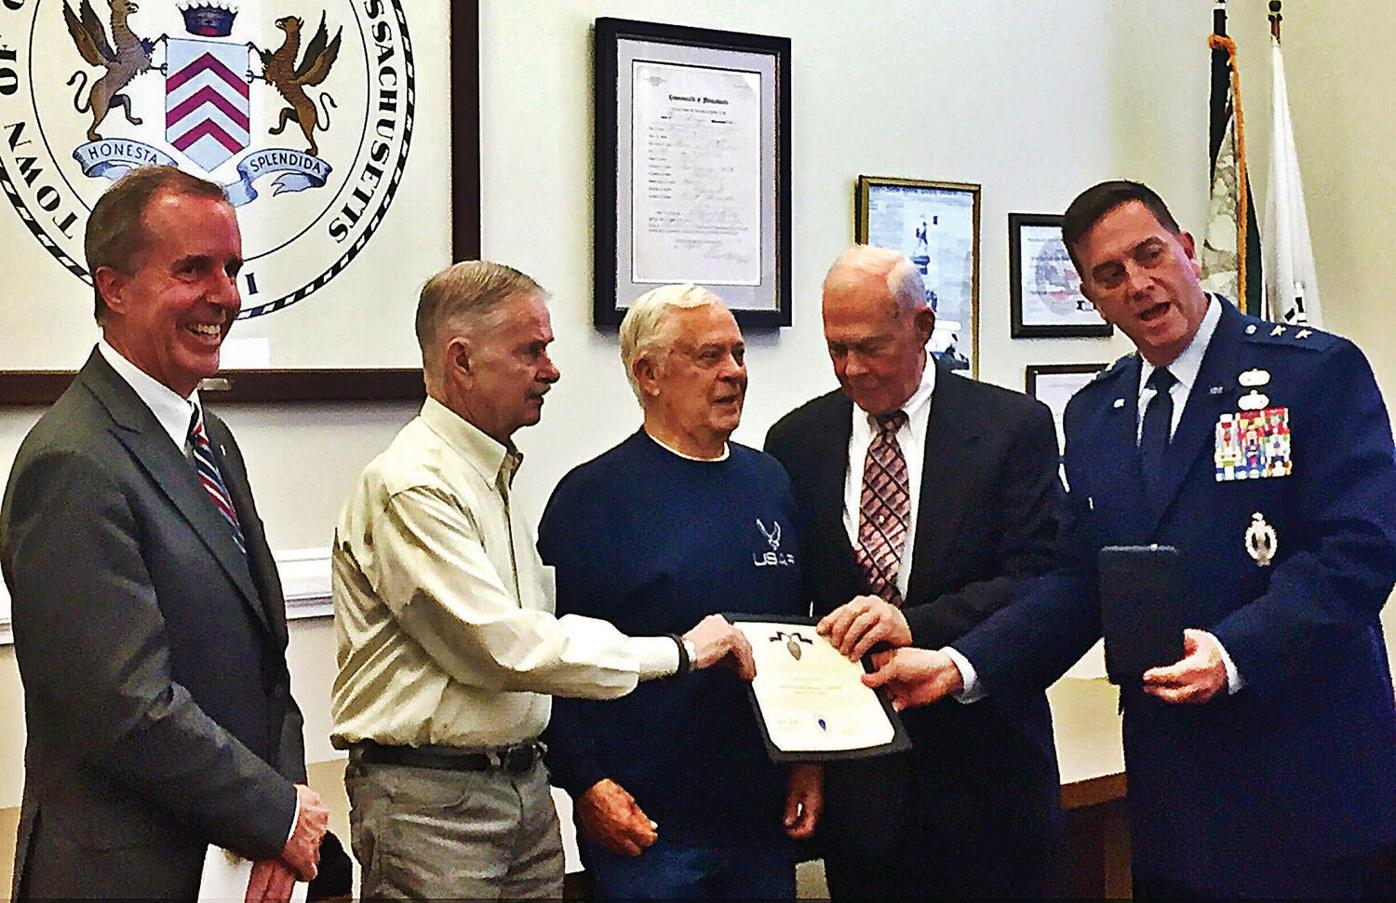 Families of 4 veterans receive state's Medal of Liberty